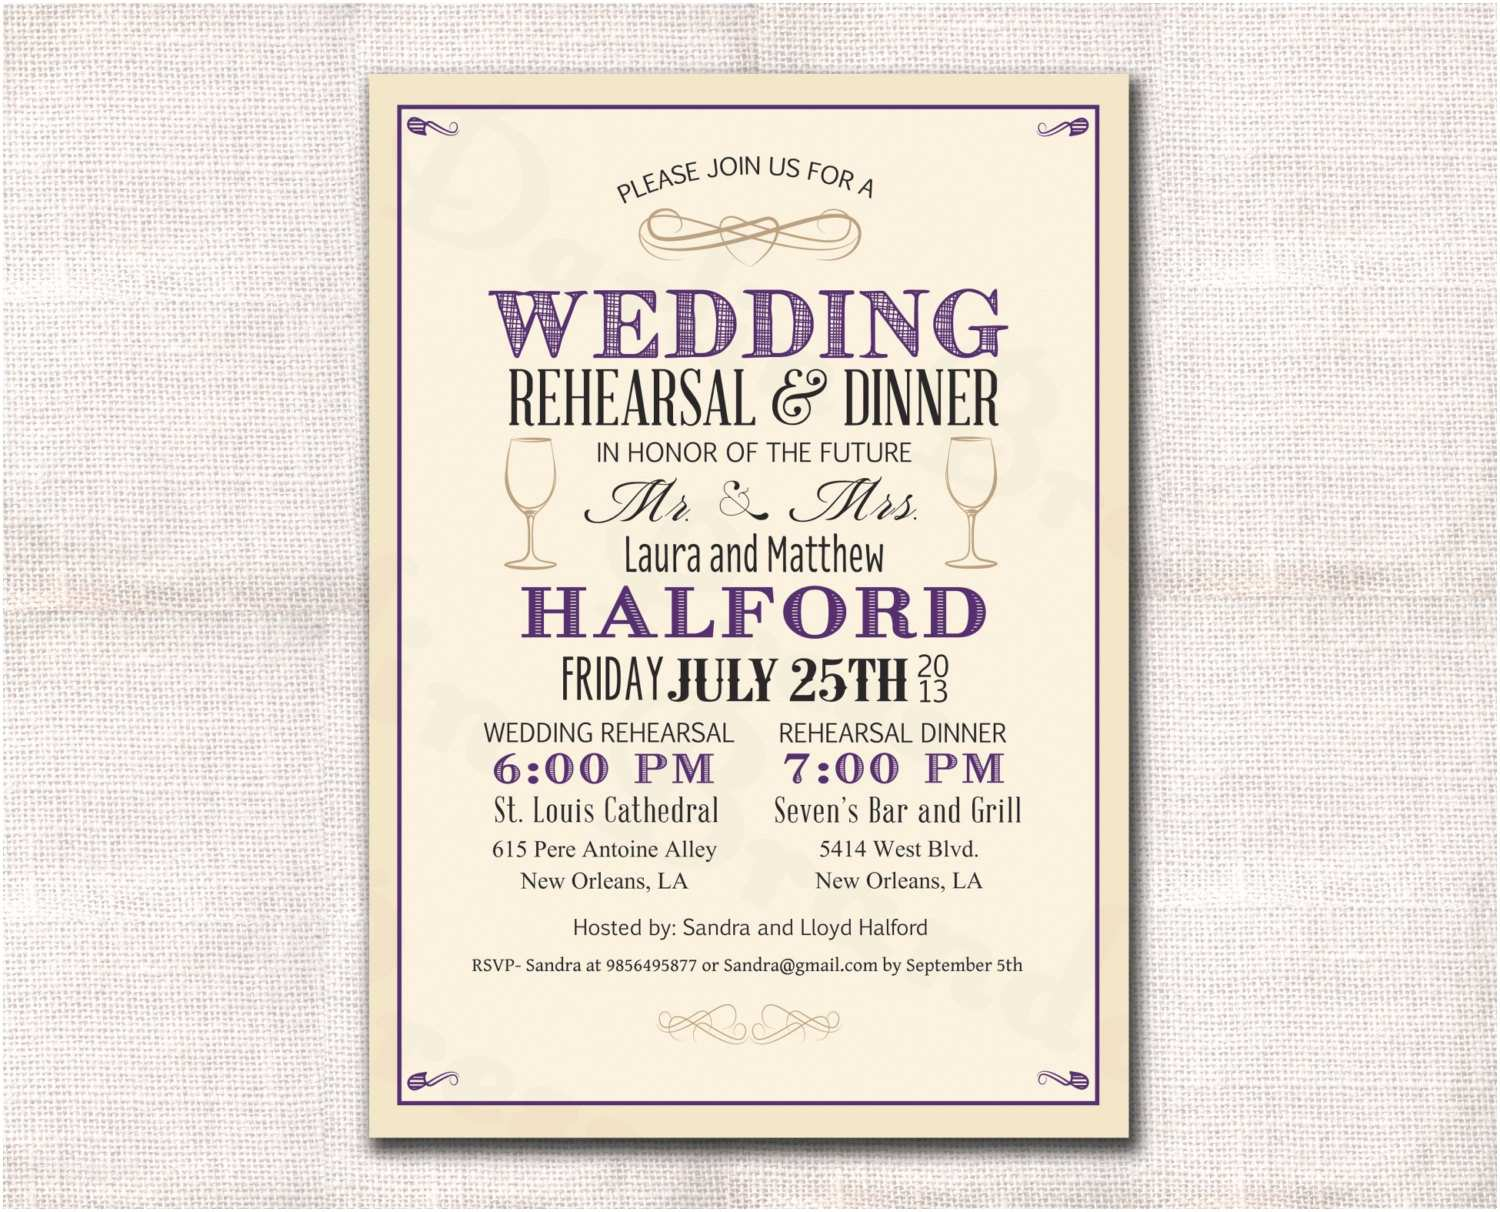 Rehearsal Dinner Invitation Template Amazing Professional Invitation Templates Image Collection